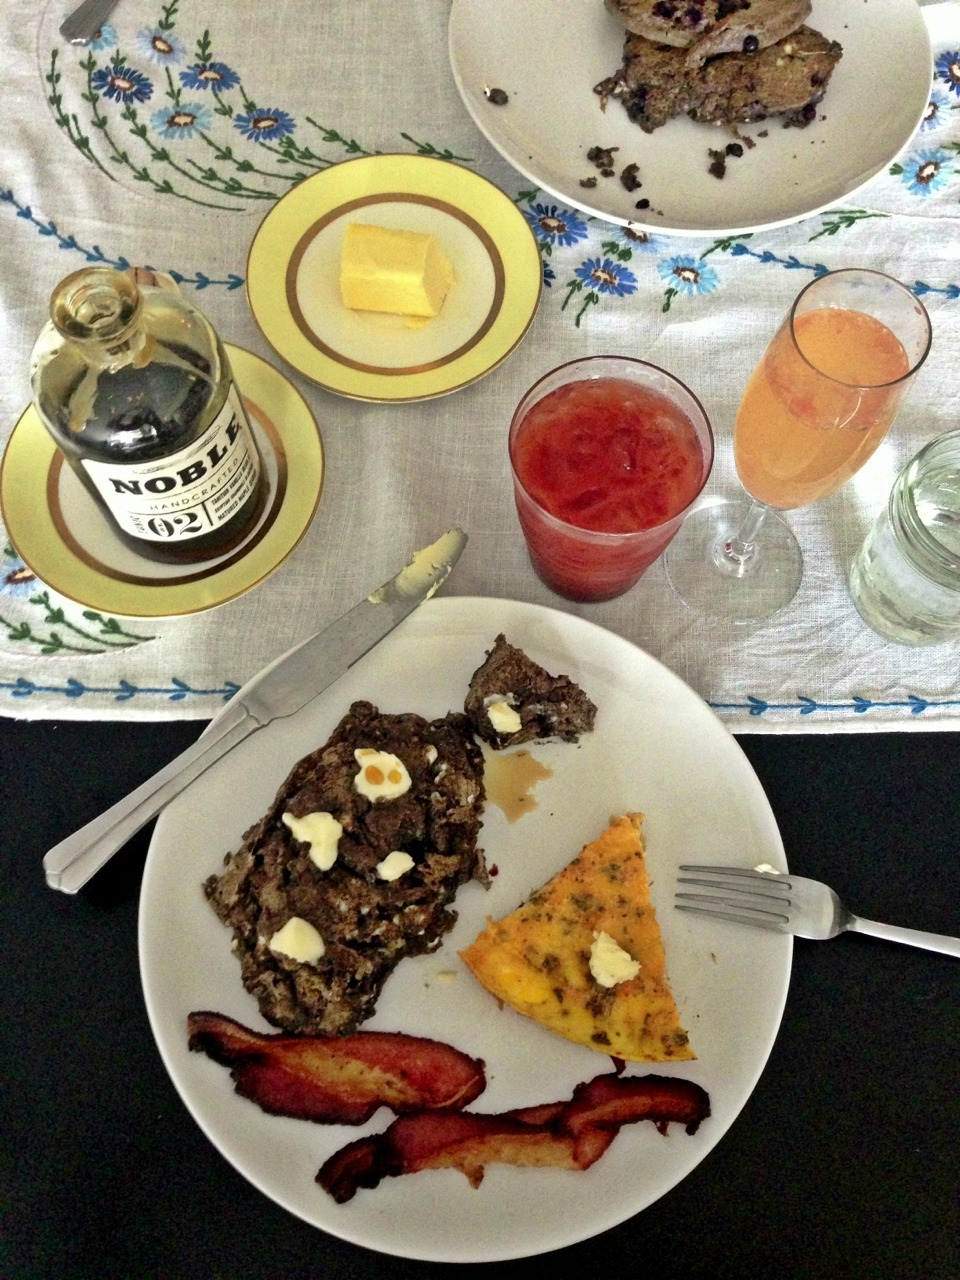 Buckwheat Blueberry Pancakes (& Noble #02 Syrup), Leek & Thyme Frittata, Rainshadow Meats Bacon Only the best for Mom!